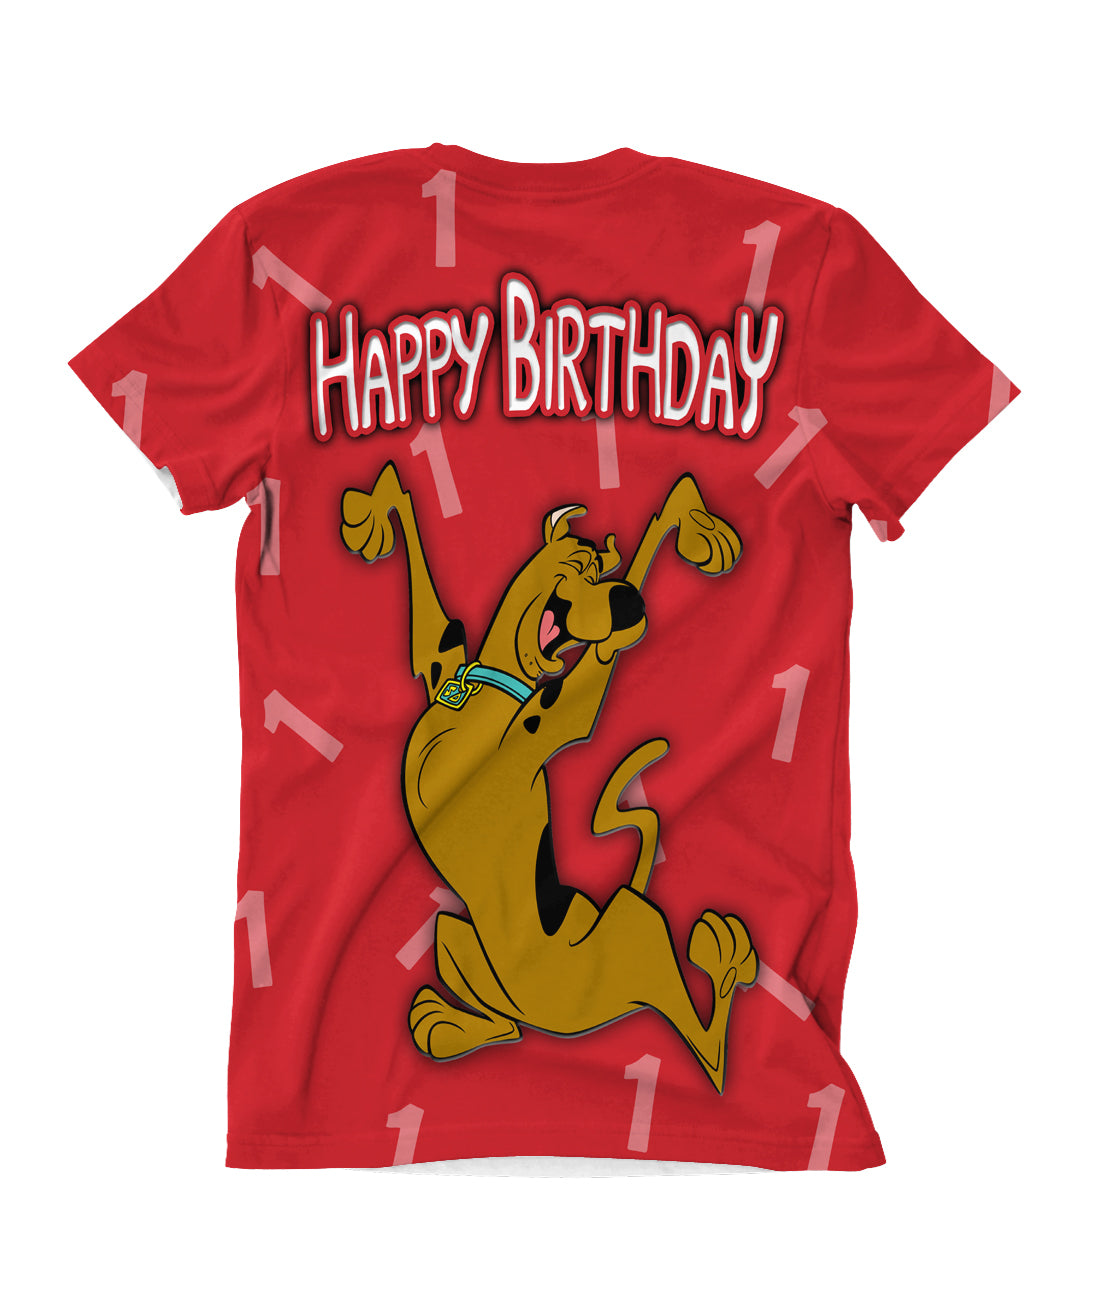 Birthday Shirt 2